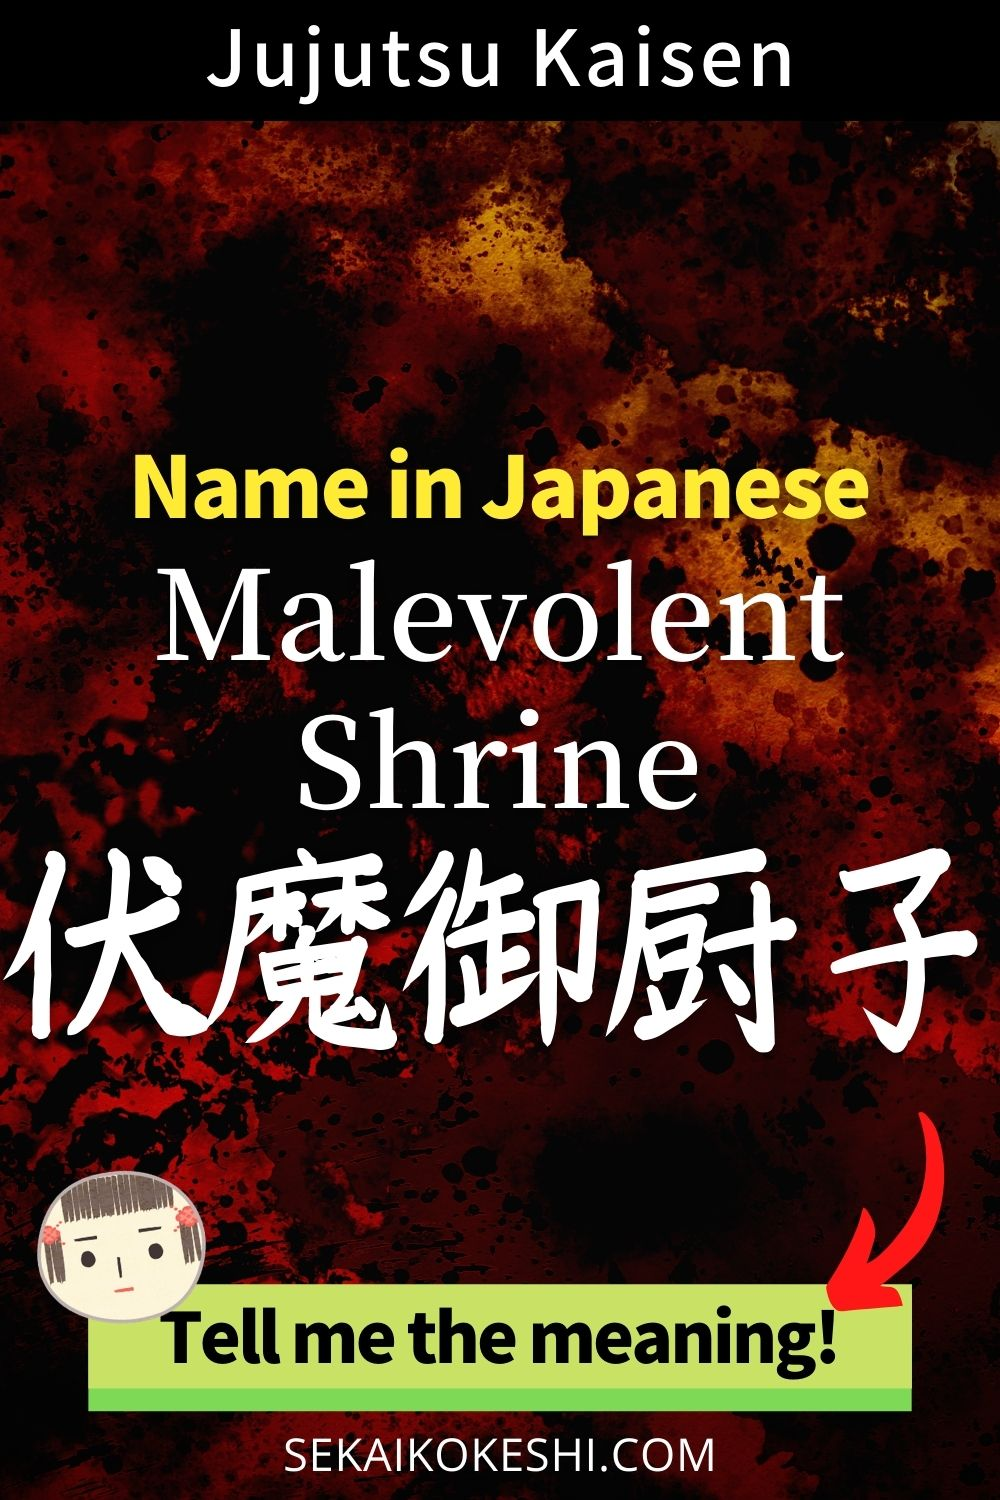 jujutsu kaisen, name in japanese, malevolent shrine, tell me the meaning!